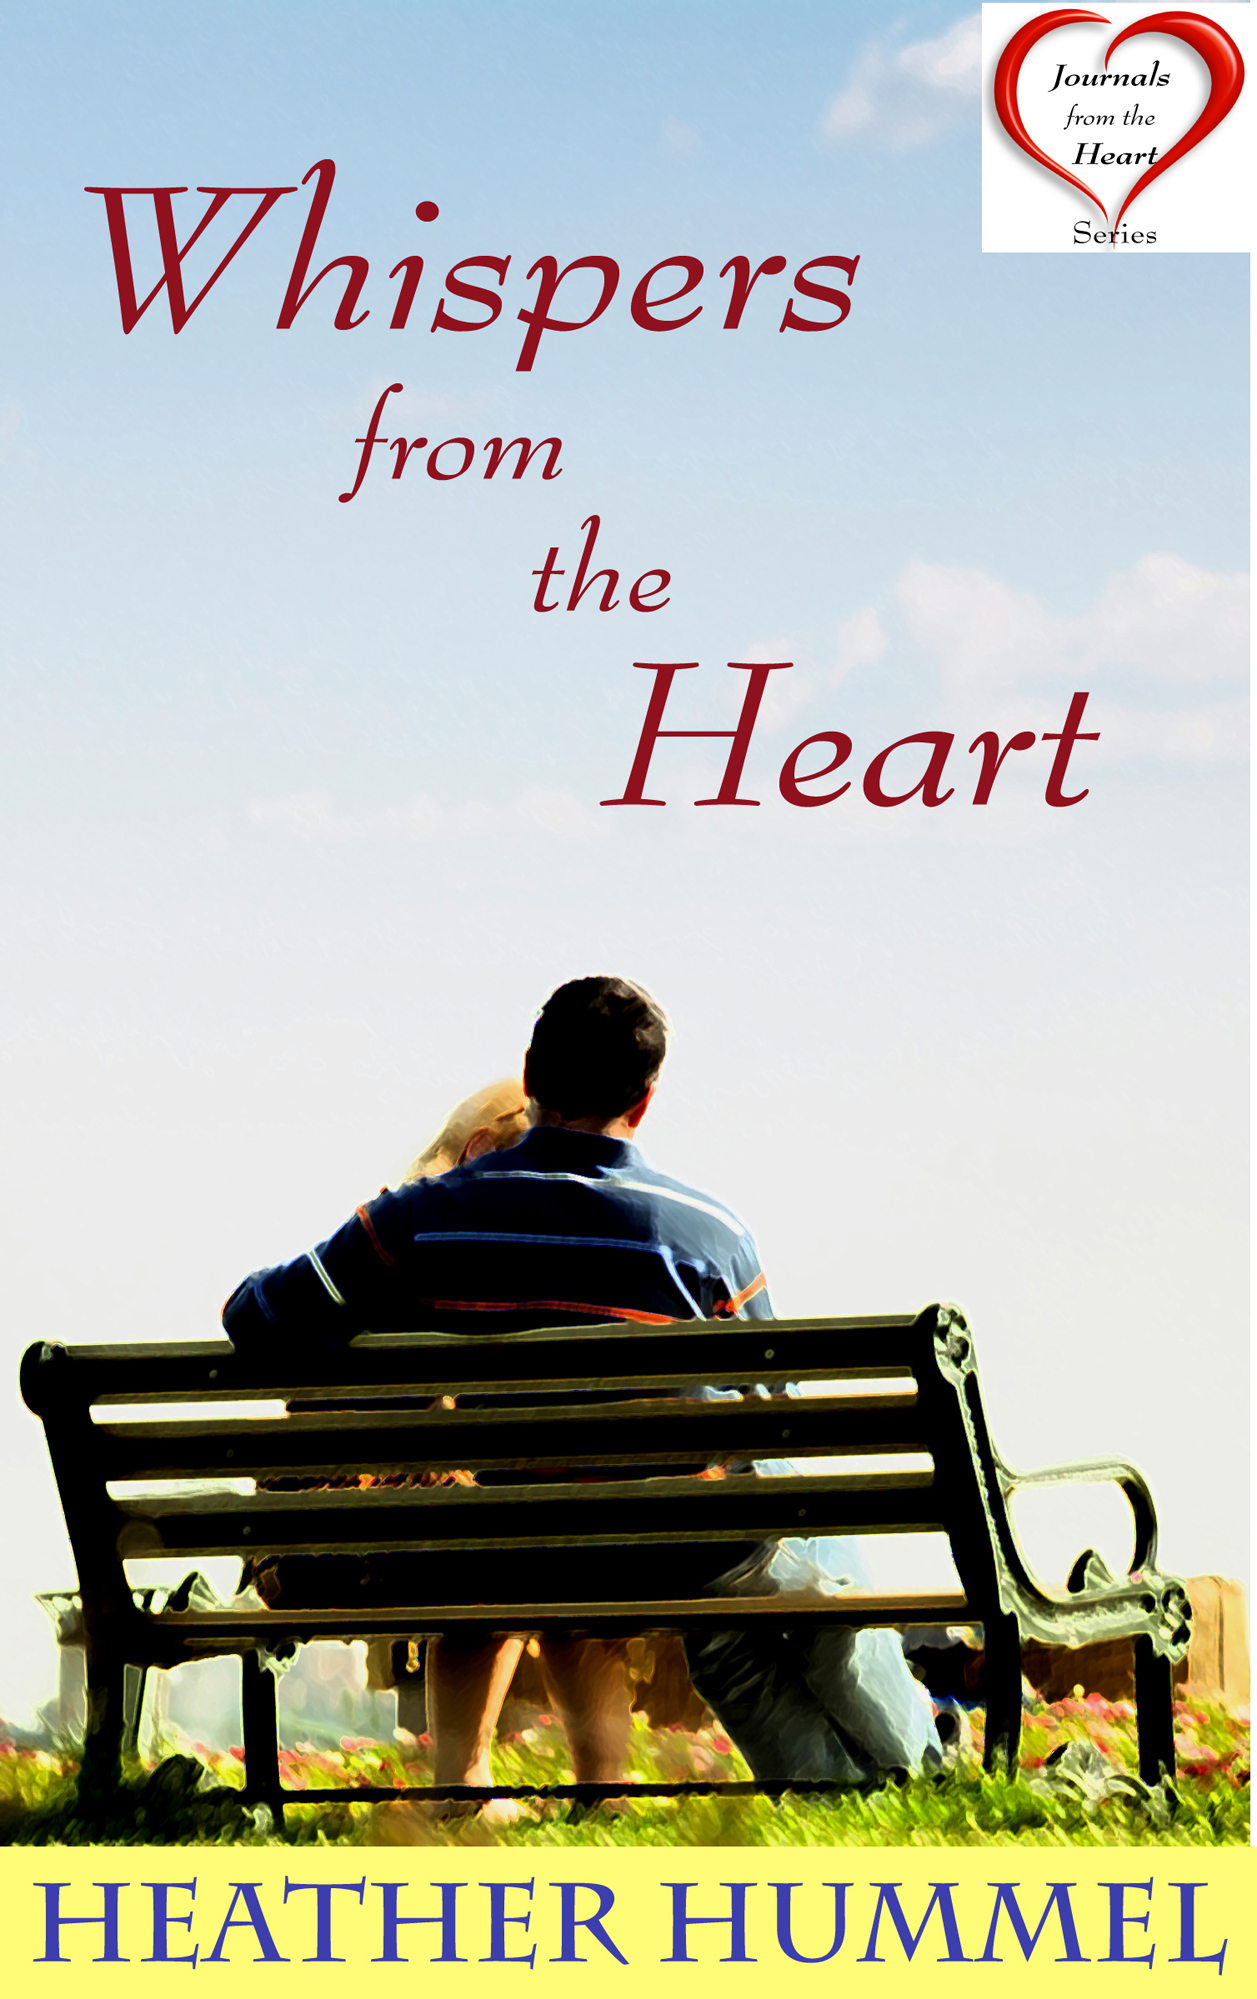 Whispers from the Heart (Journals from the Heart Series)